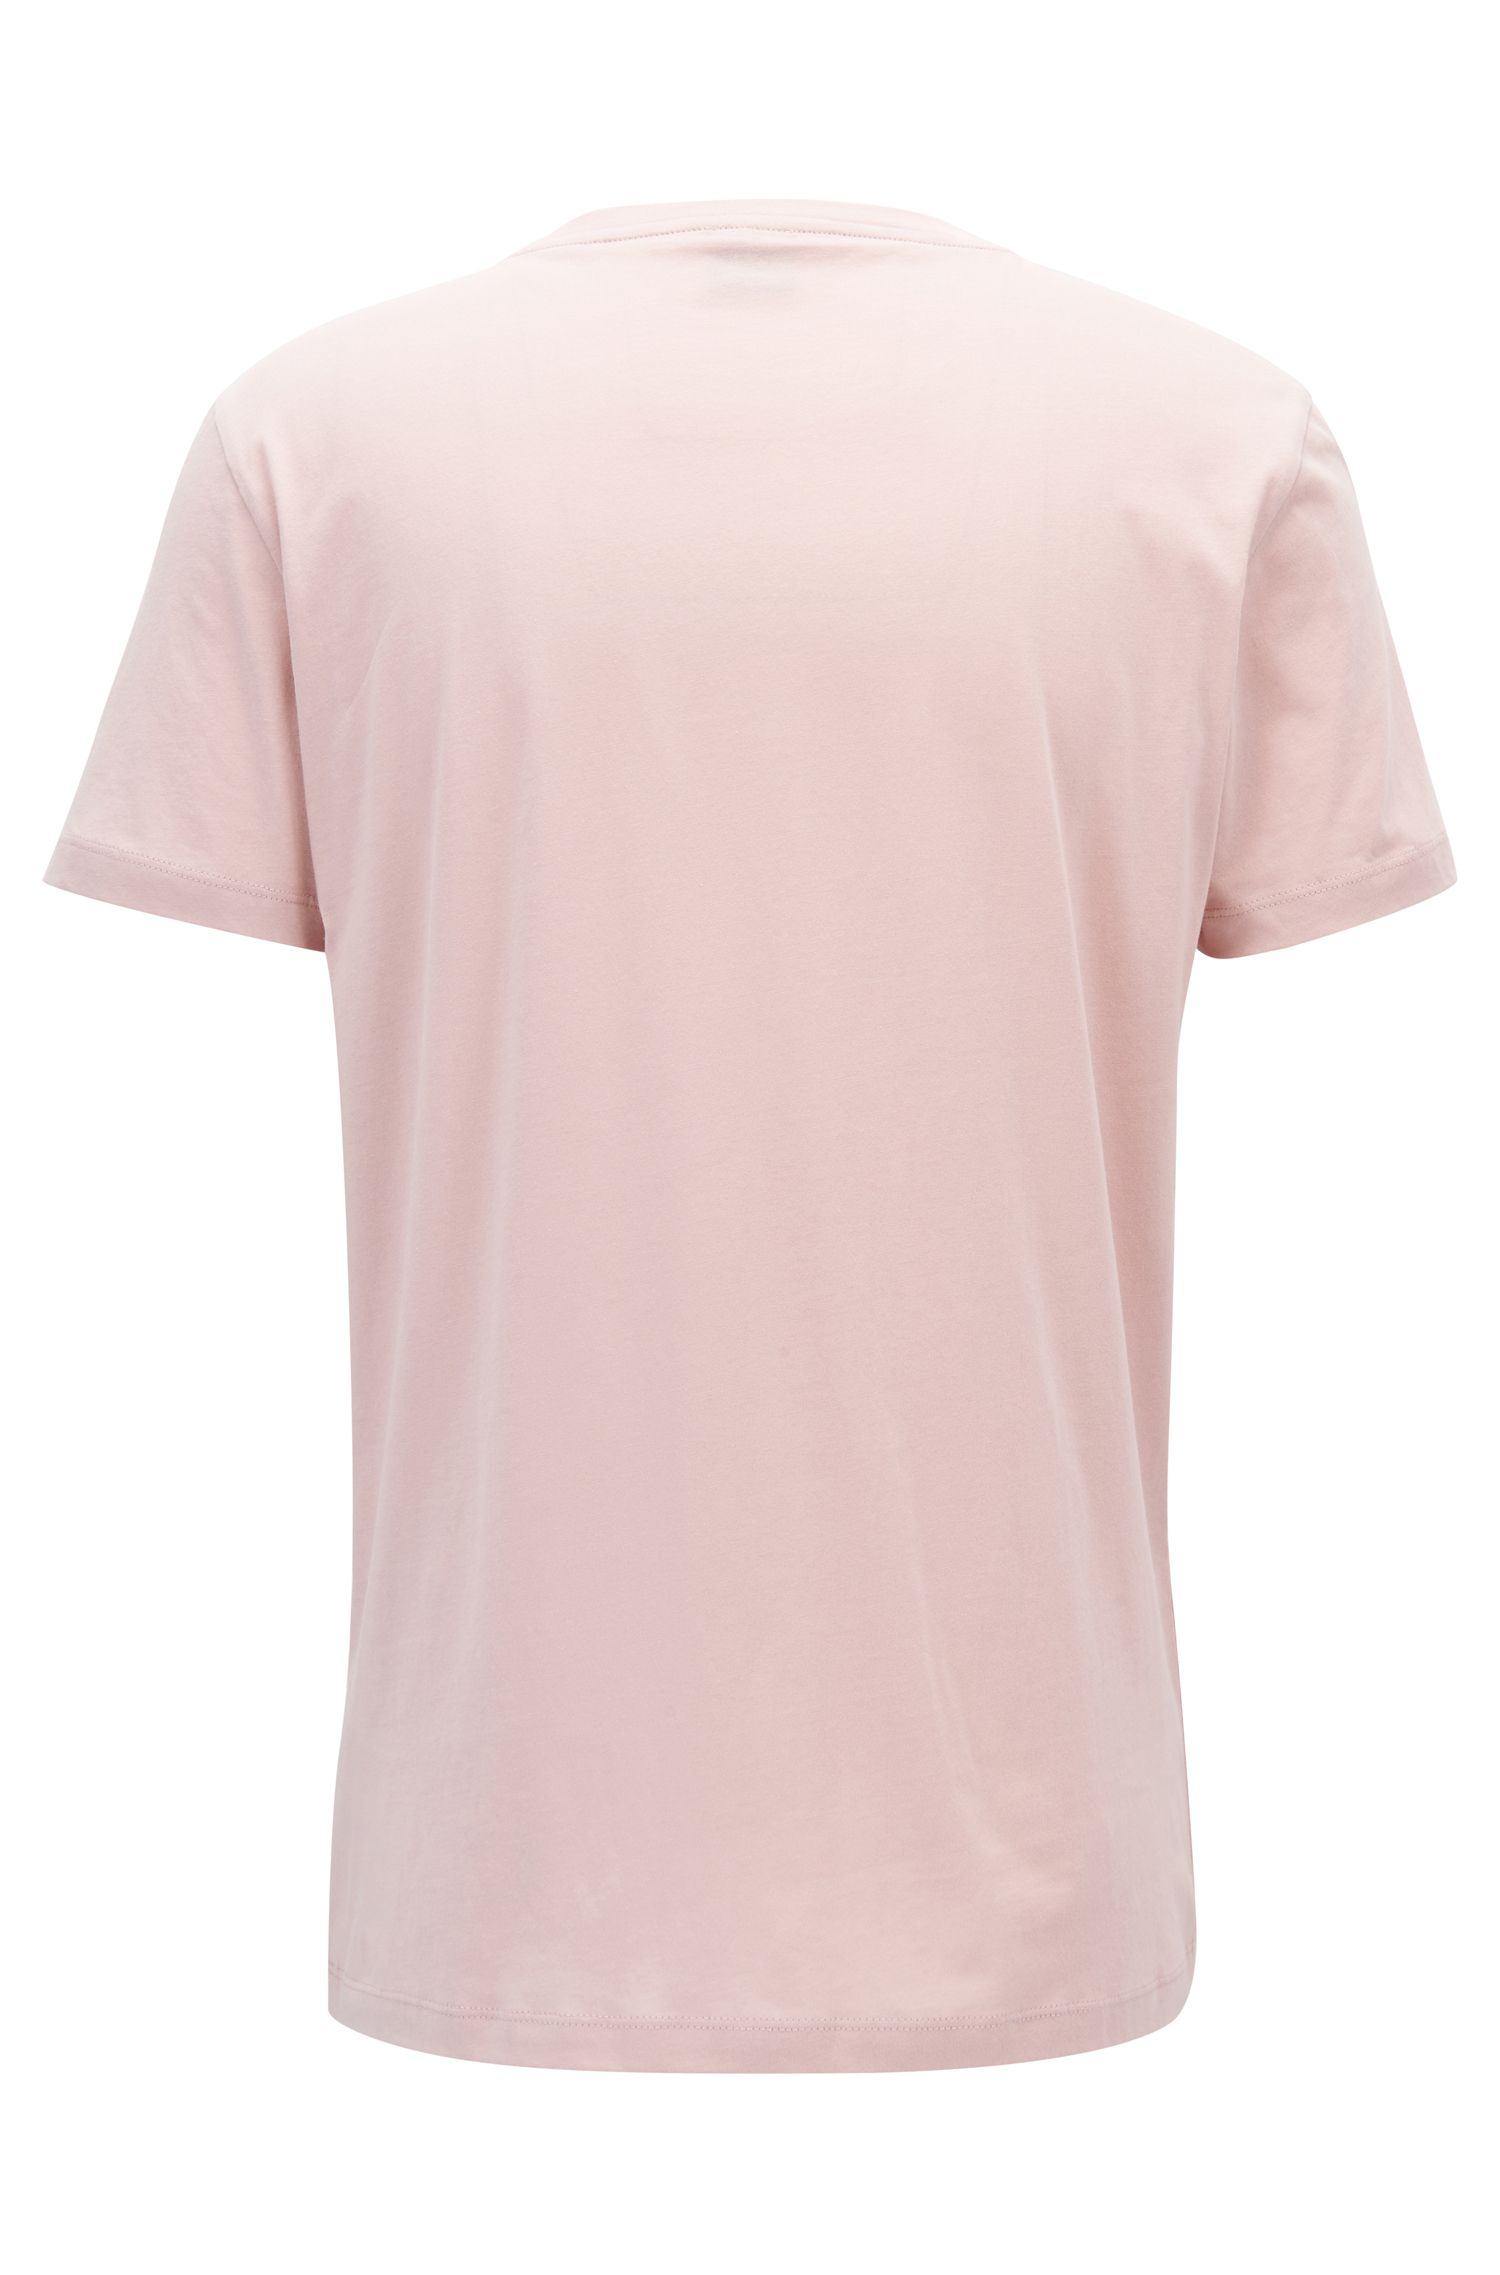 Relaxed-Fit T-Shirt aus Baumwolle mit Logo, Hellrosa